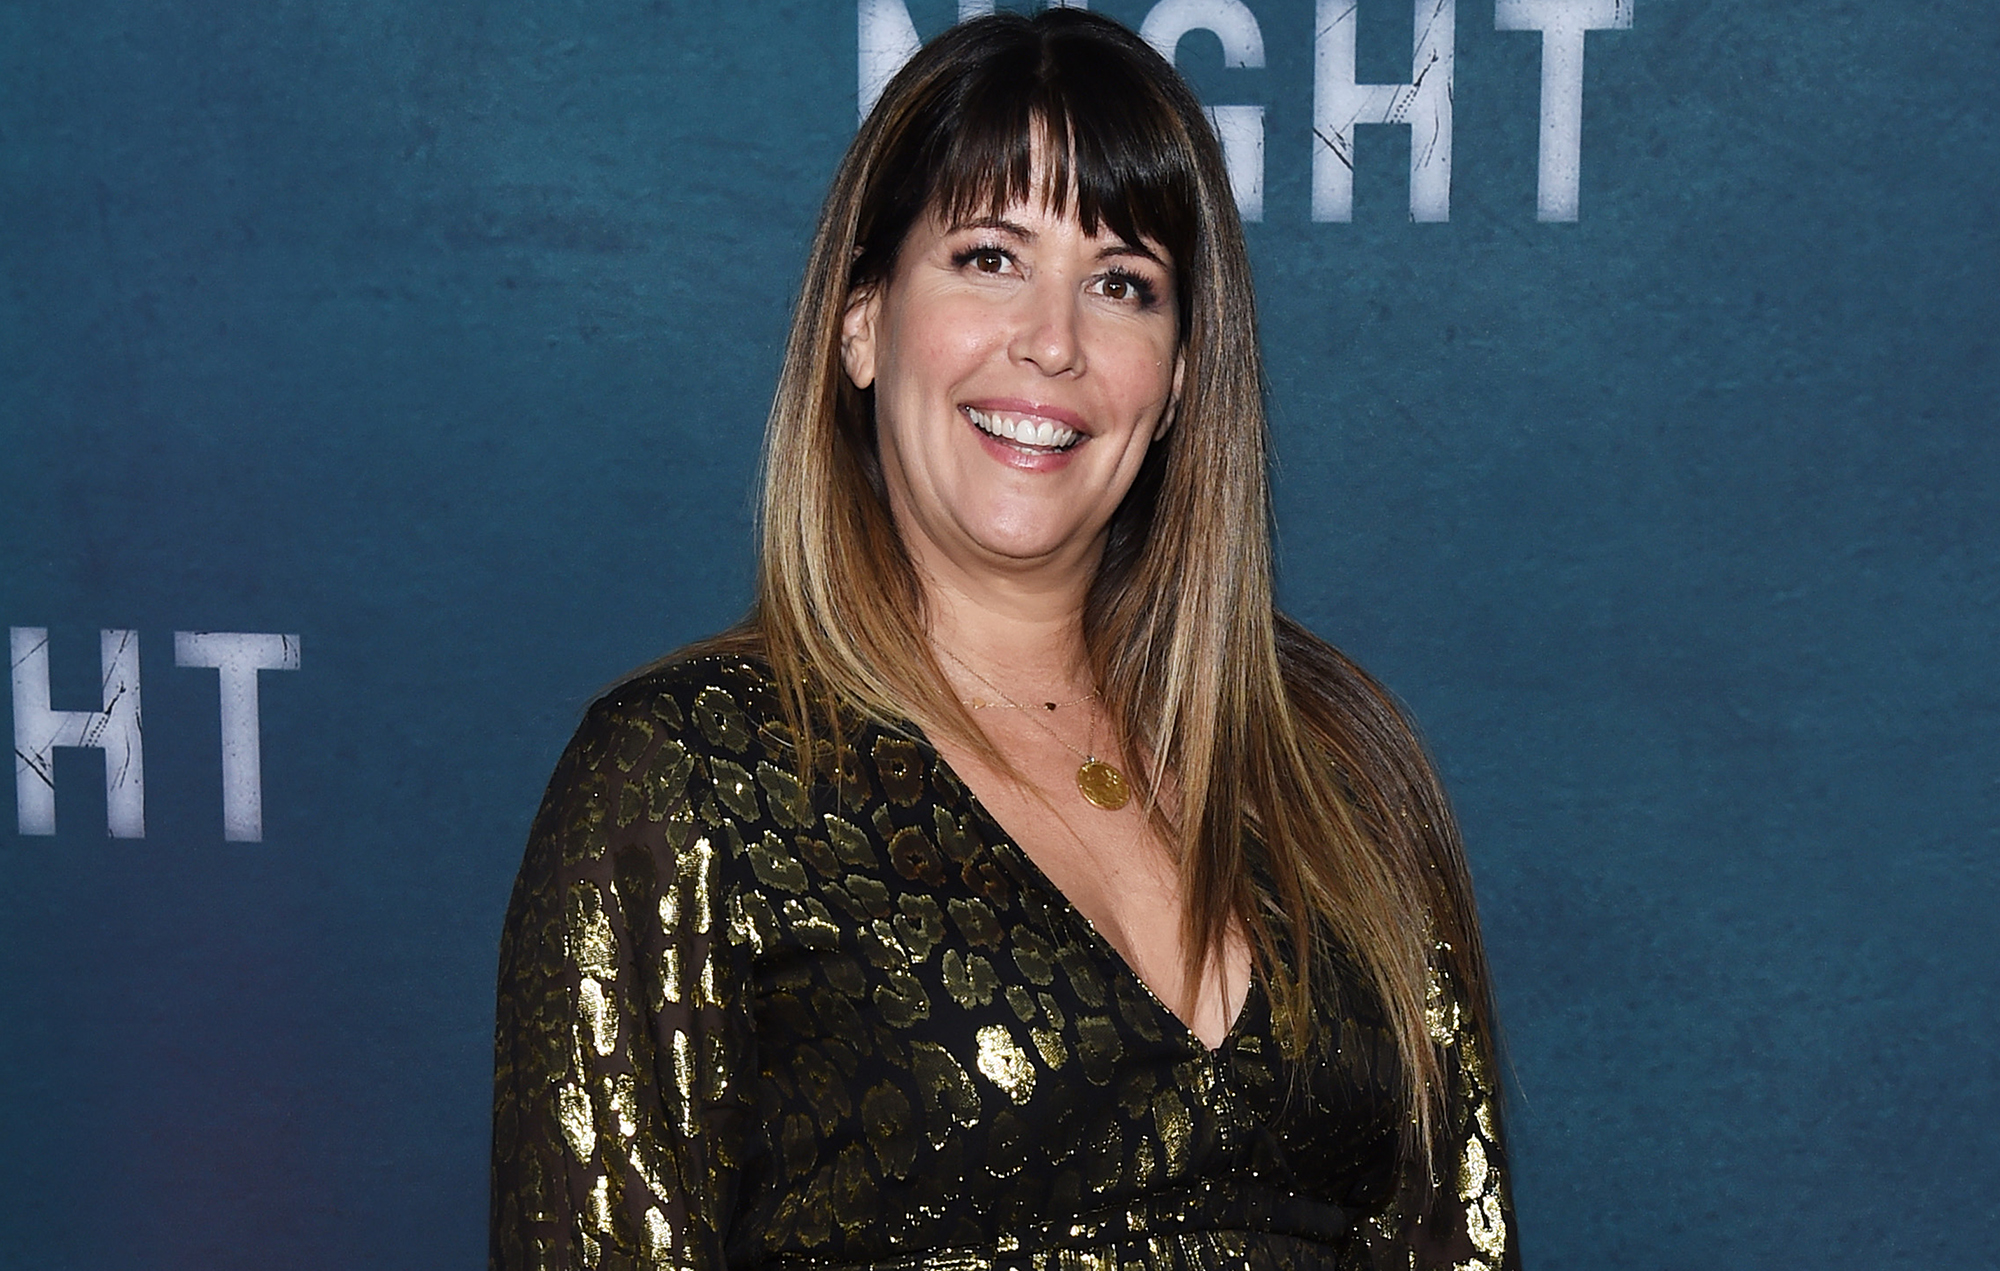 Director Patty Jenkins to direct the new Star Wars movie